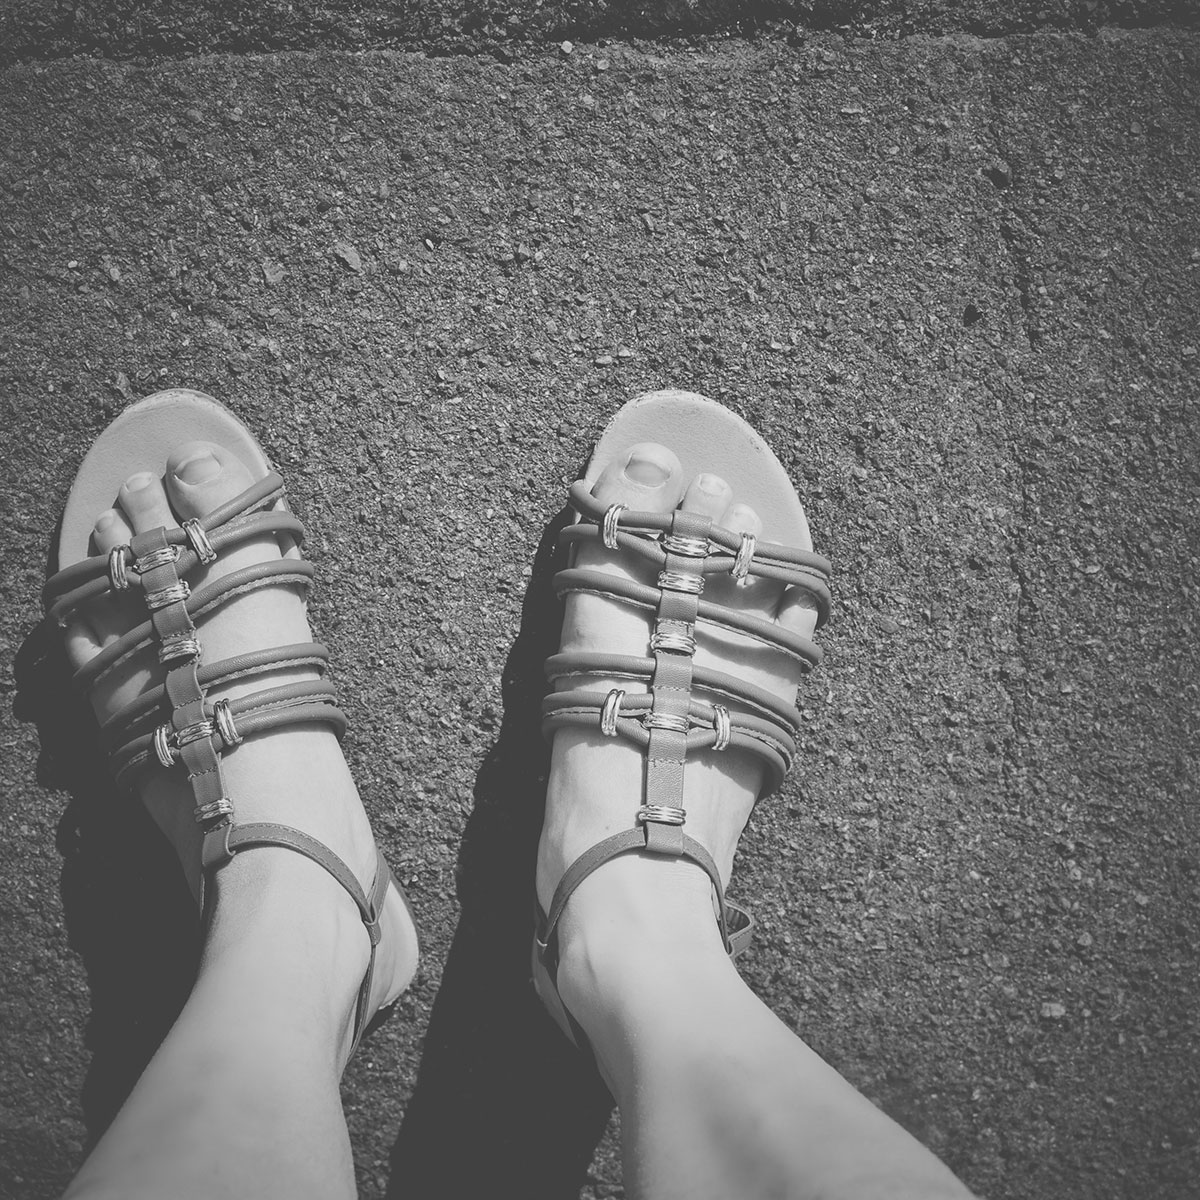 Our month in insta-snaps; May 2016 - Aerial shot of feet in sandals on a warm, sunny day for holiday